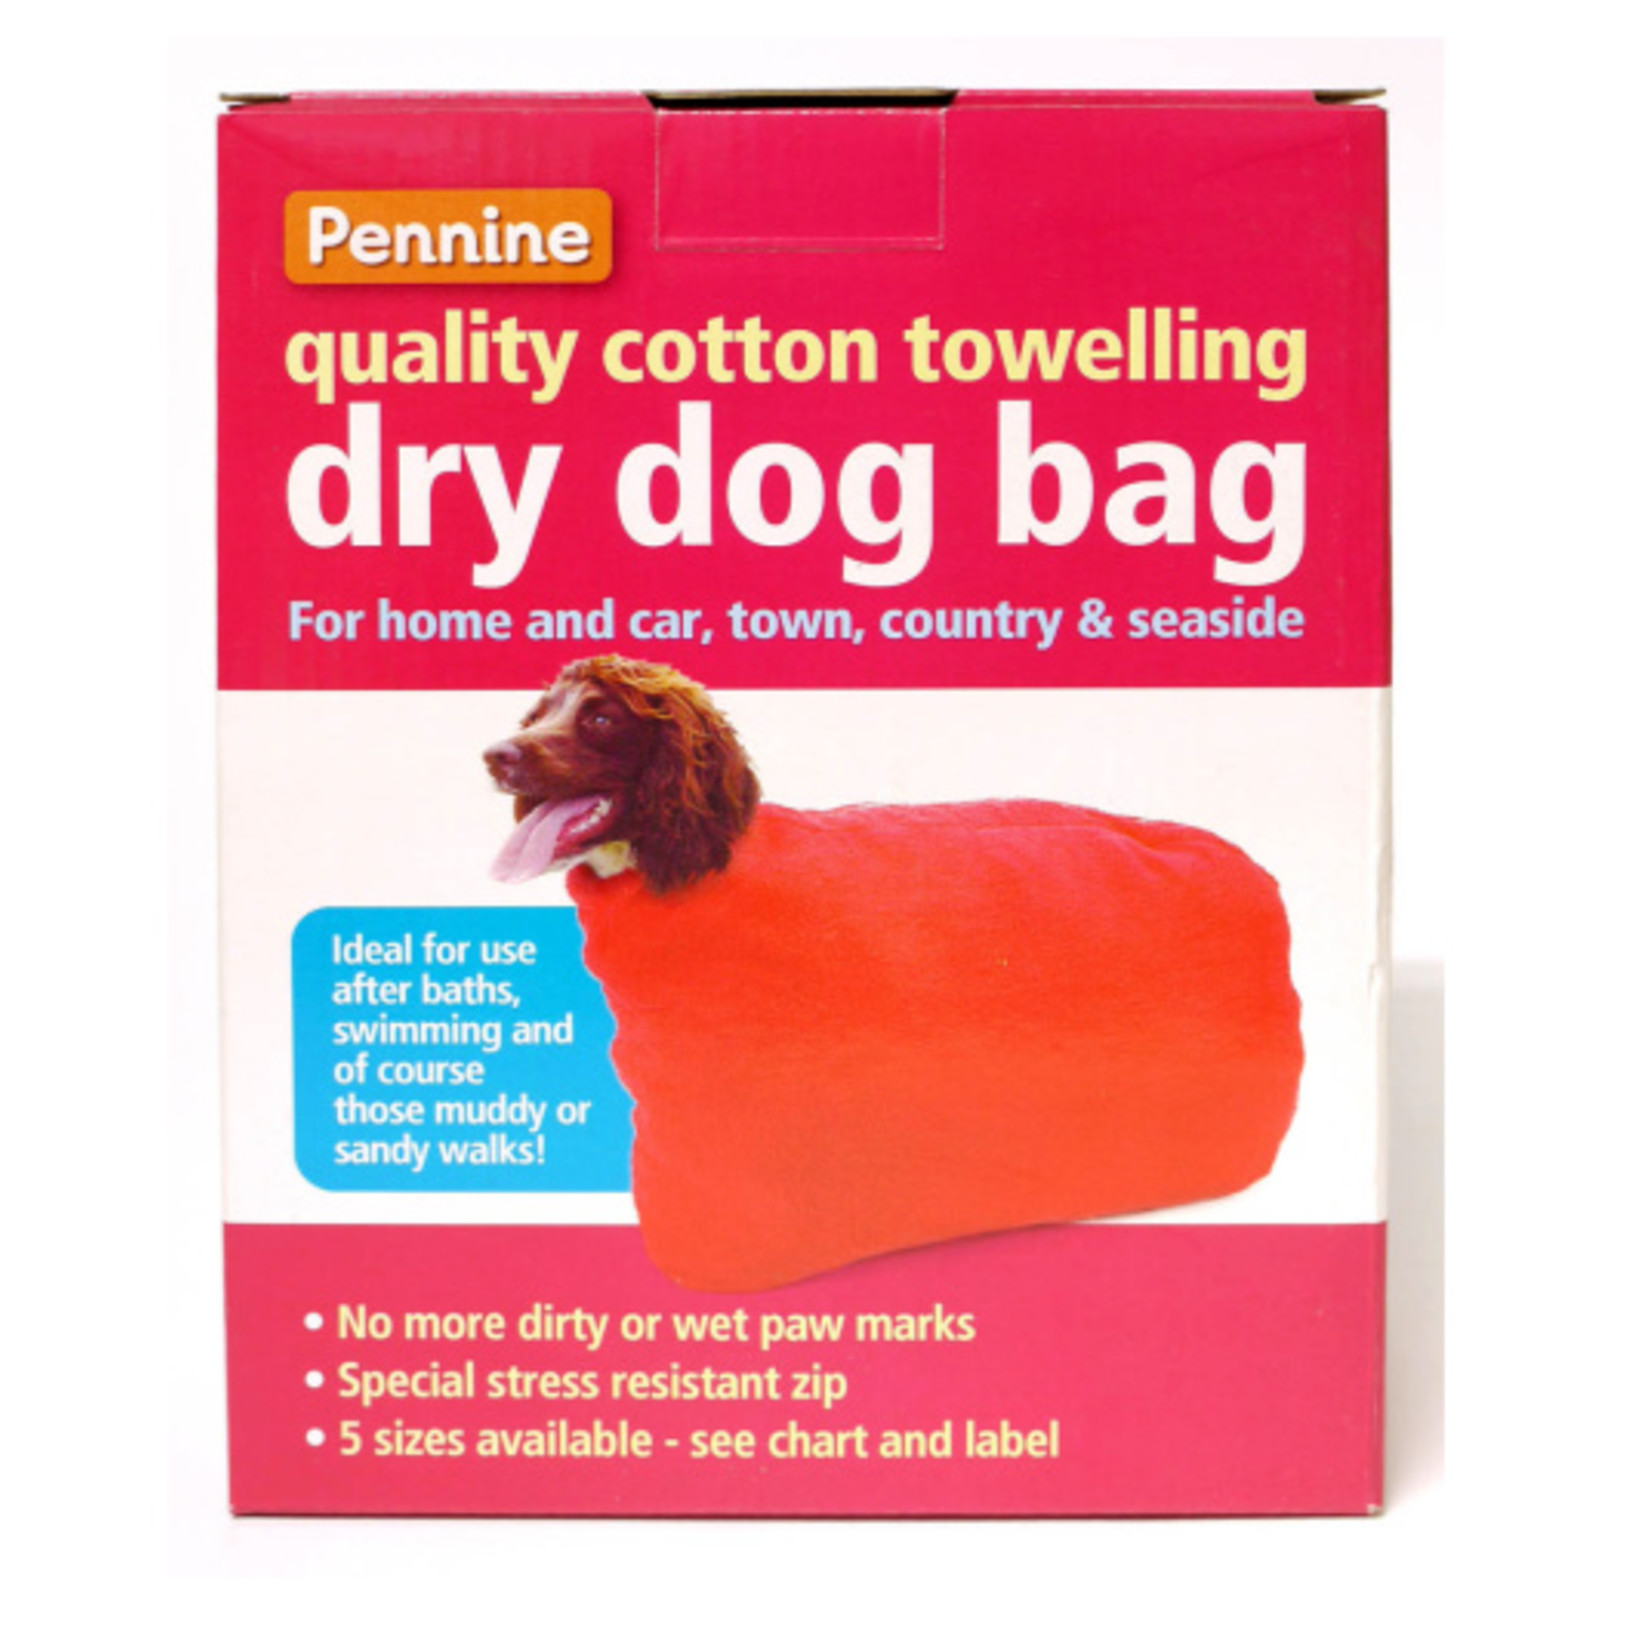 Pennine Dry & Clean Dog Cotton Towelling Bag